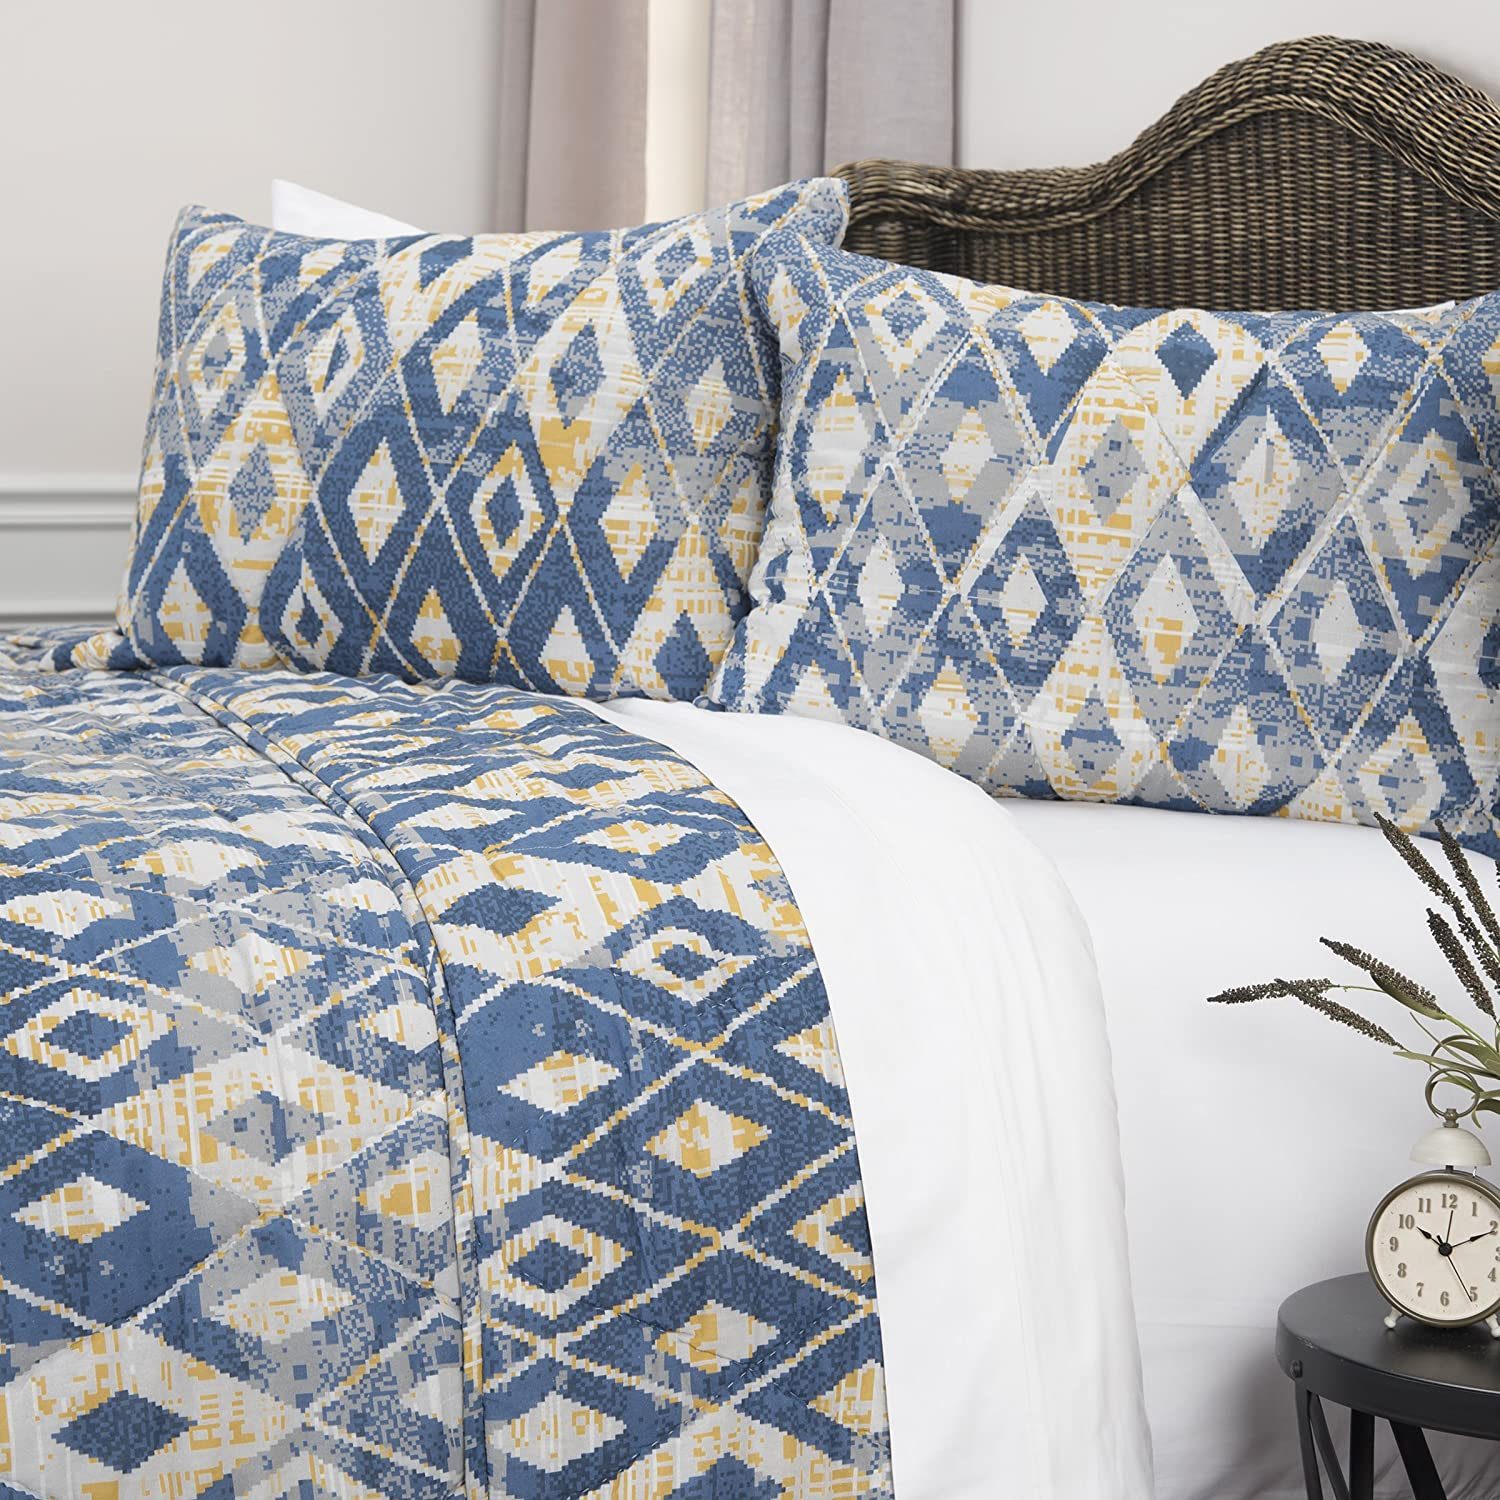 Rizzy Home Maddux Place Asher Geometric 2 Piece Quilt Set Twin X-Large Blue Rizzy Home Fashions QLTBQ4590BLYE6894